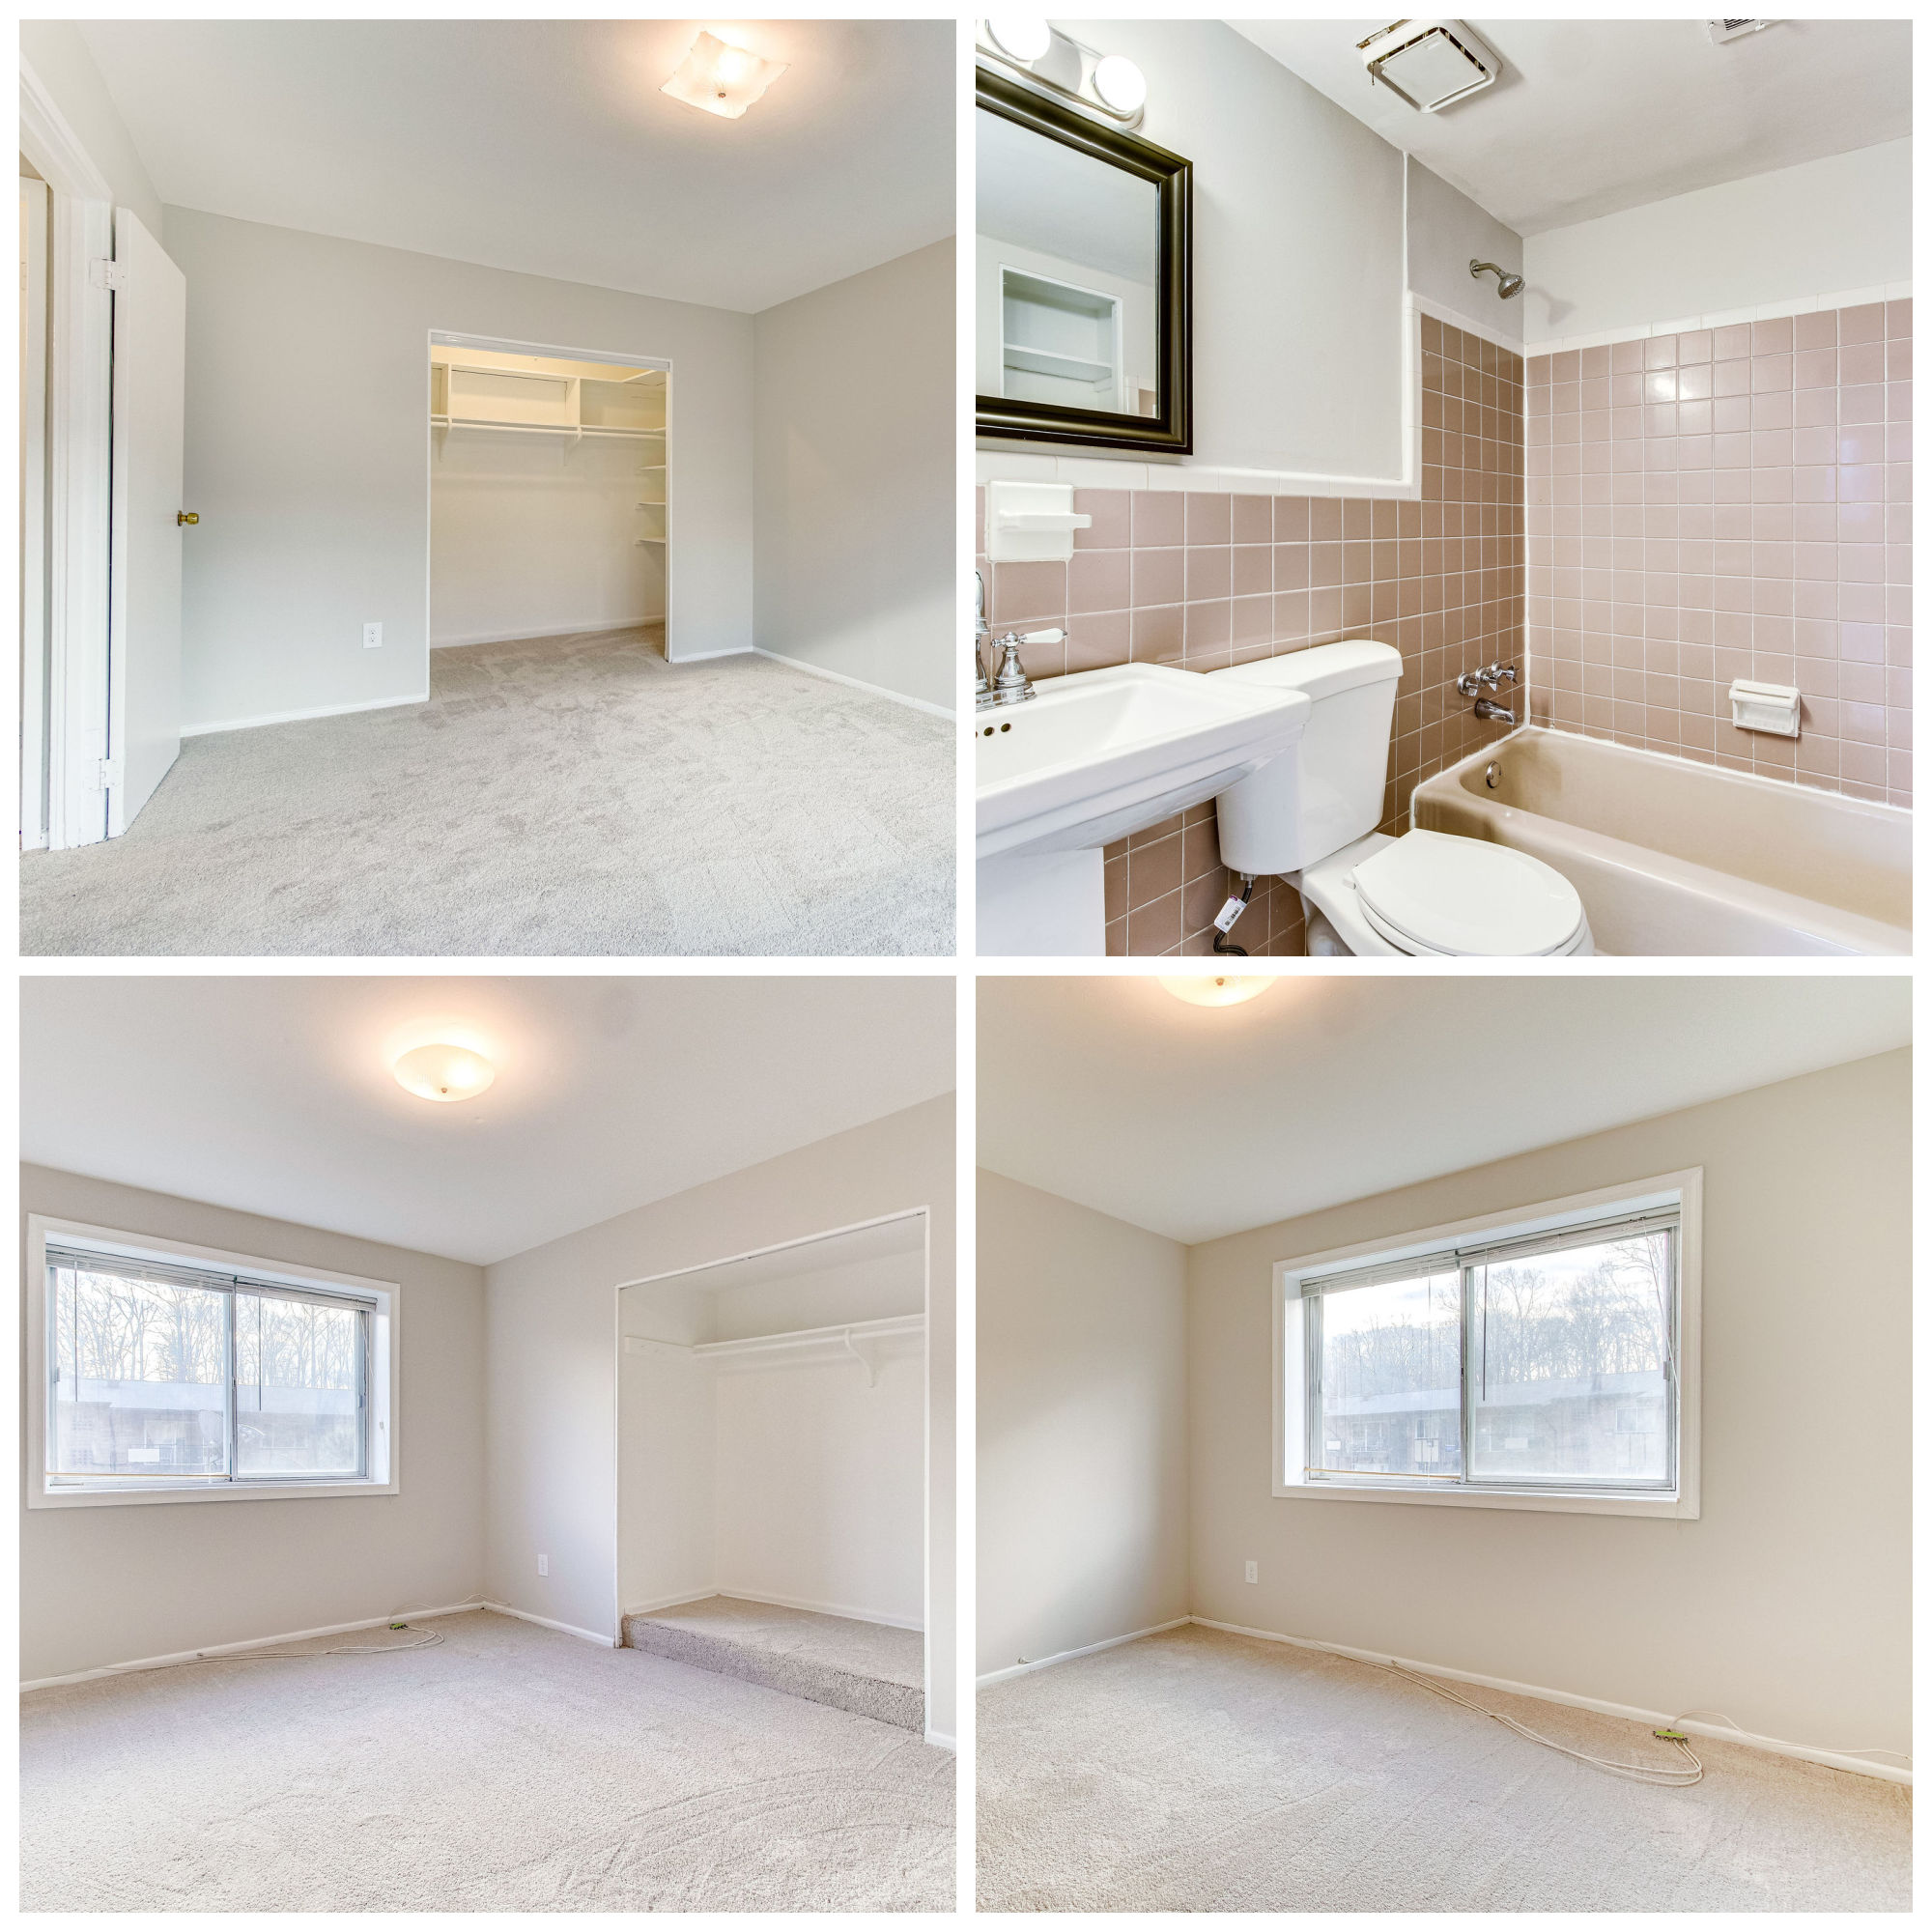 10028 Mosby Woods Dr #166, Fairfax- Bedrooms and Bathroom